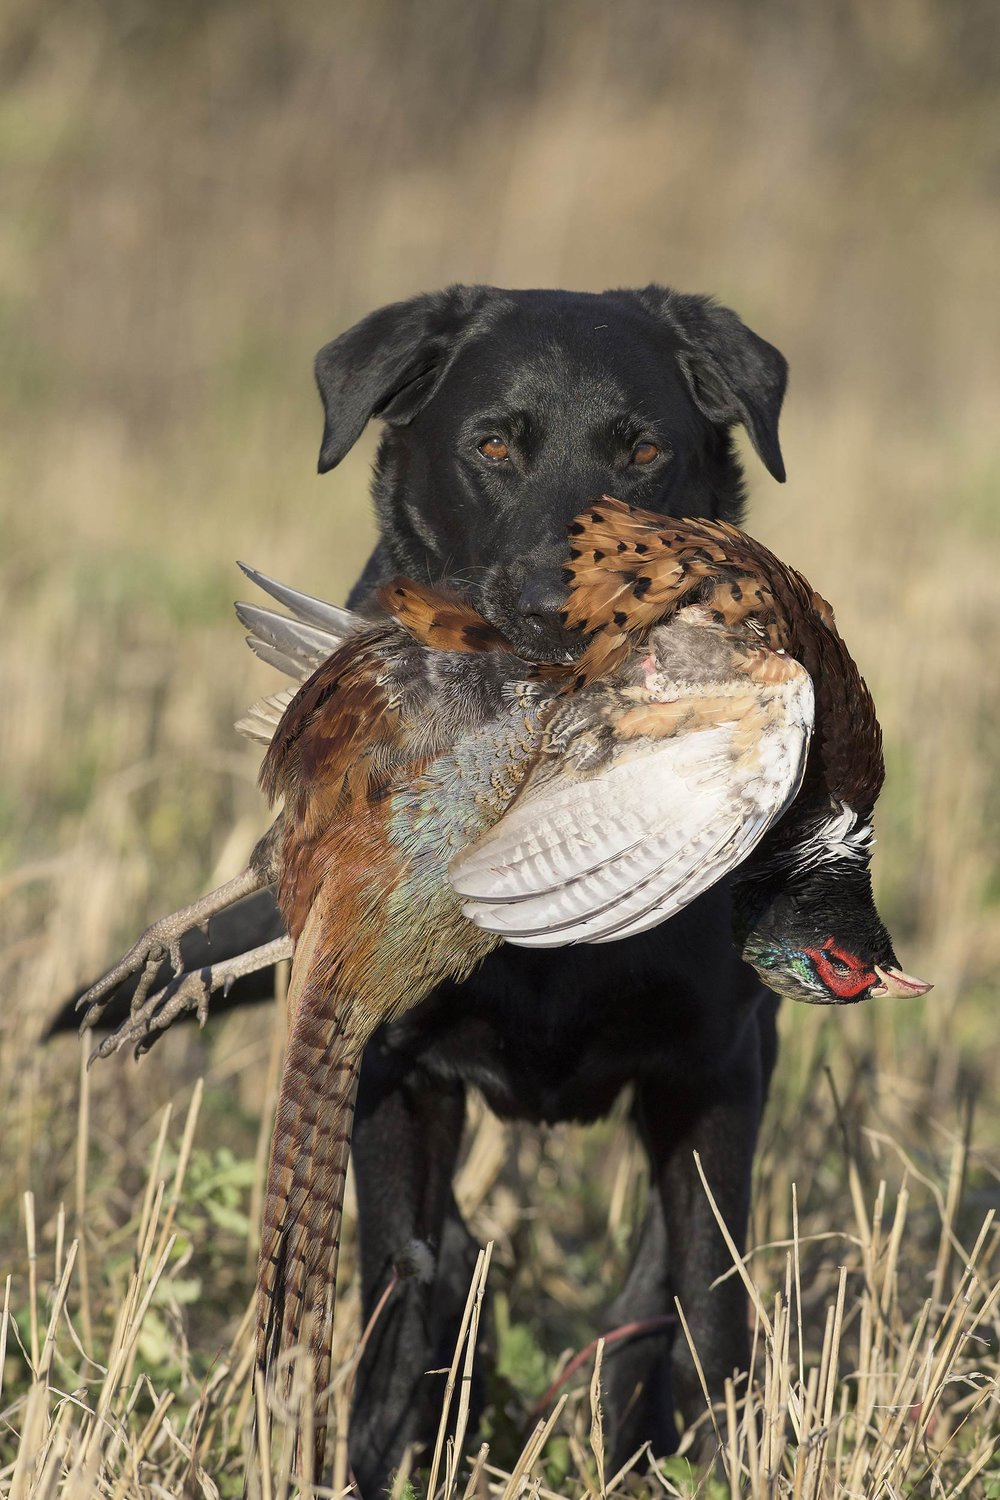 Bird dog training for upland and waterfowl hunting.